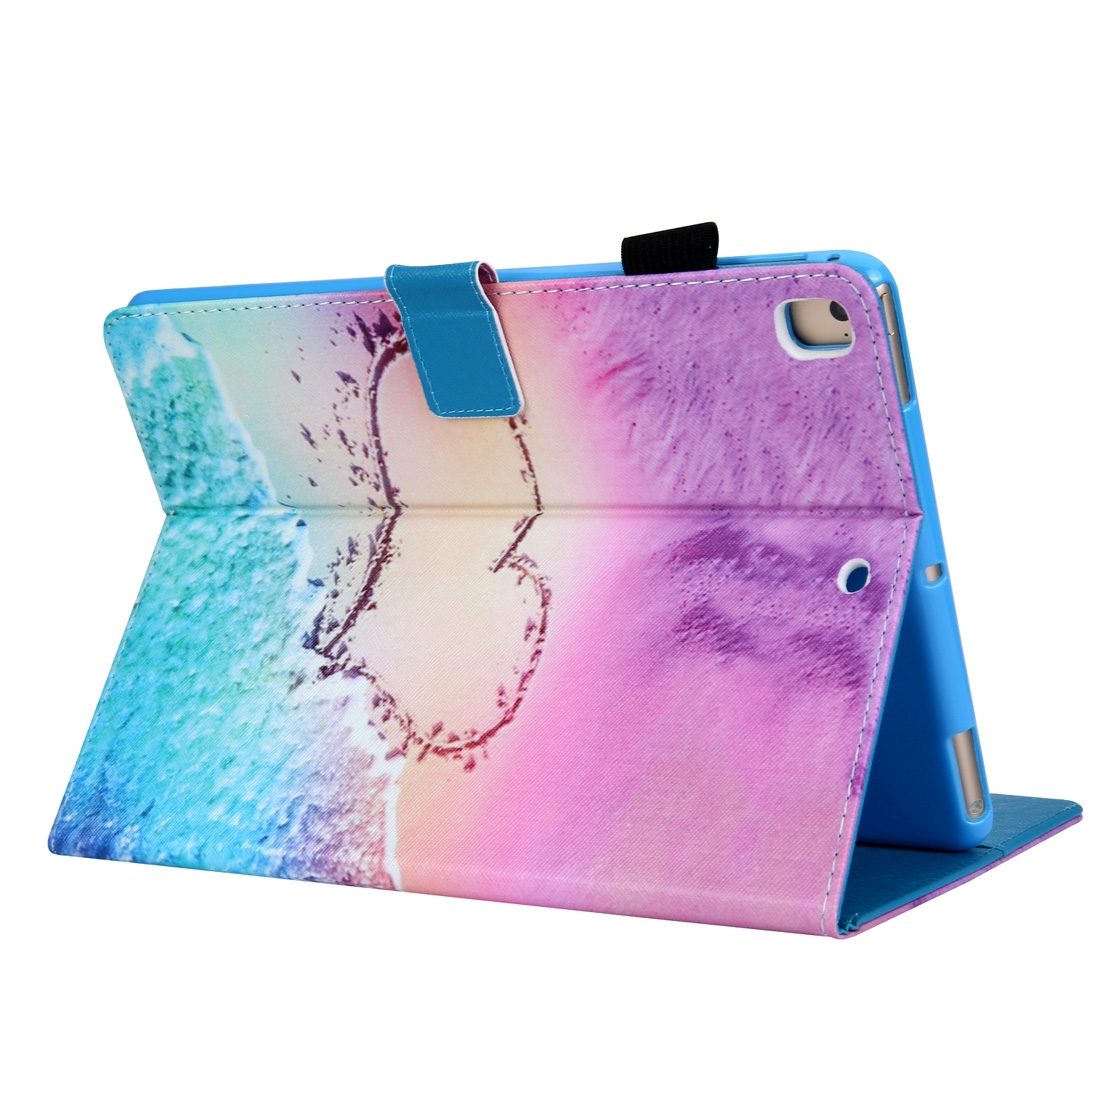 Hearty Leather iPad Air Case/ Air 2/ iPad Pro 9.7 2016/ iPad 9.7 2017/ 9.7 2018, w/ Slim Profile